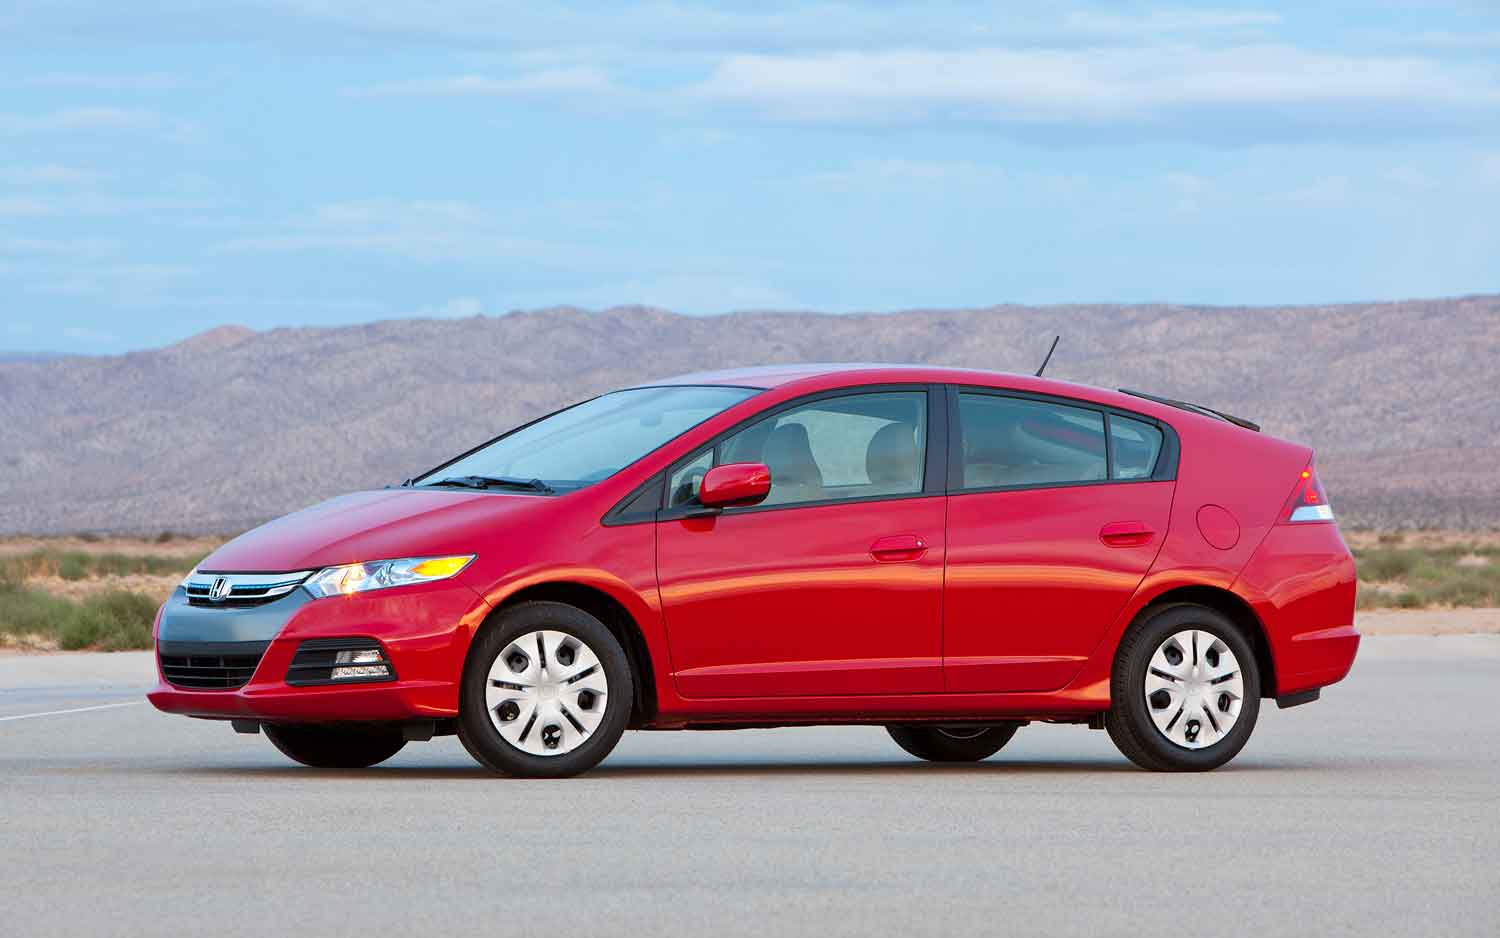 2012 Honda Insight Front Side View In Red1